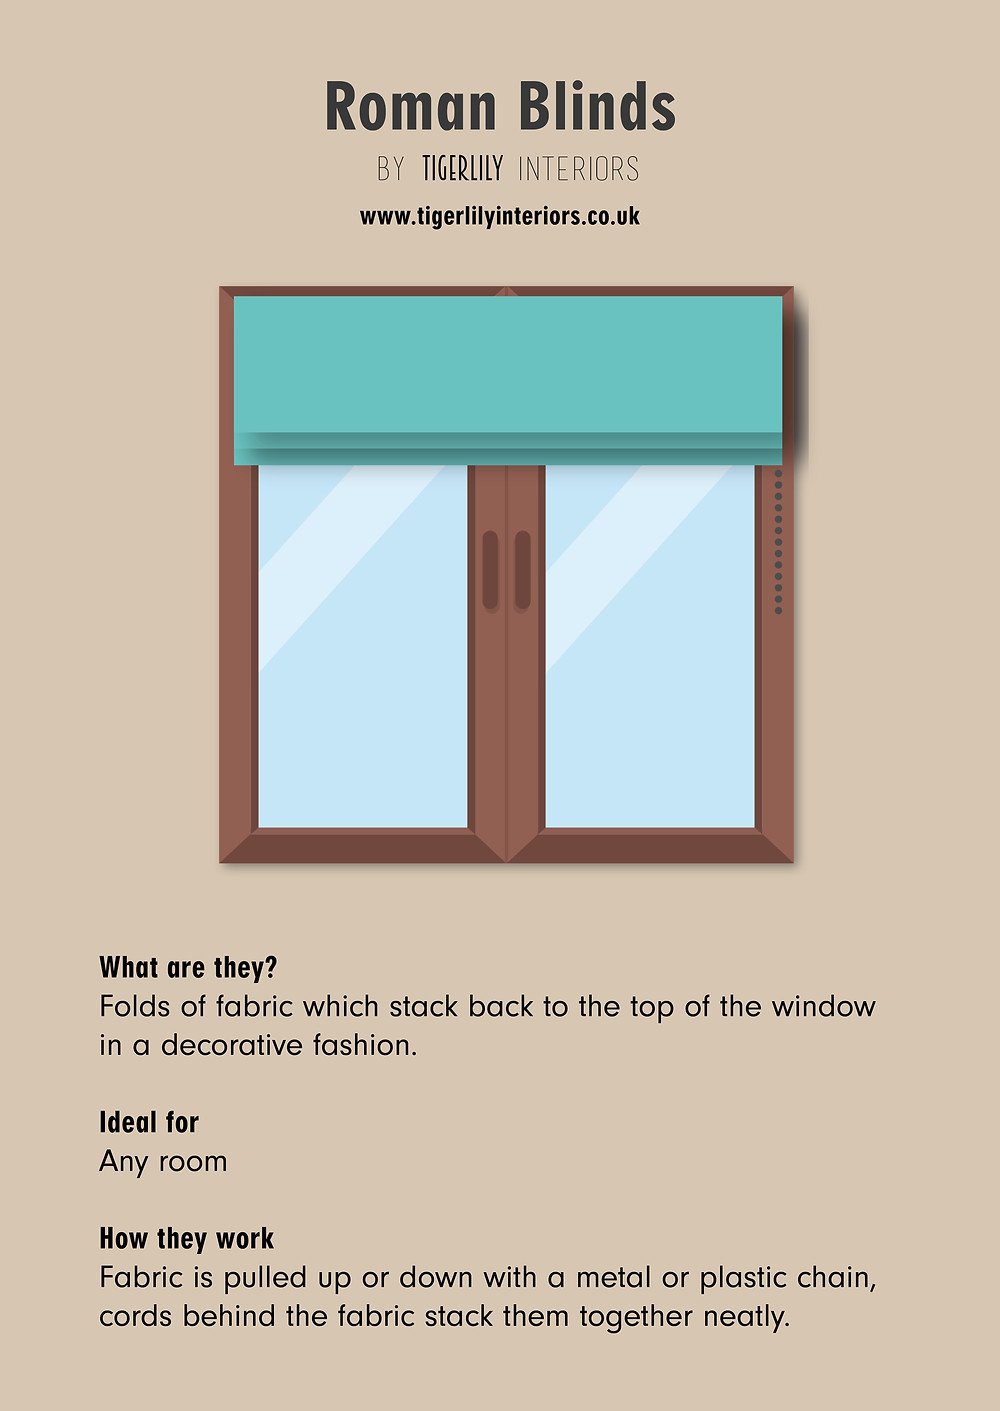 roman blinds illustration. understanding blind types and window treatments